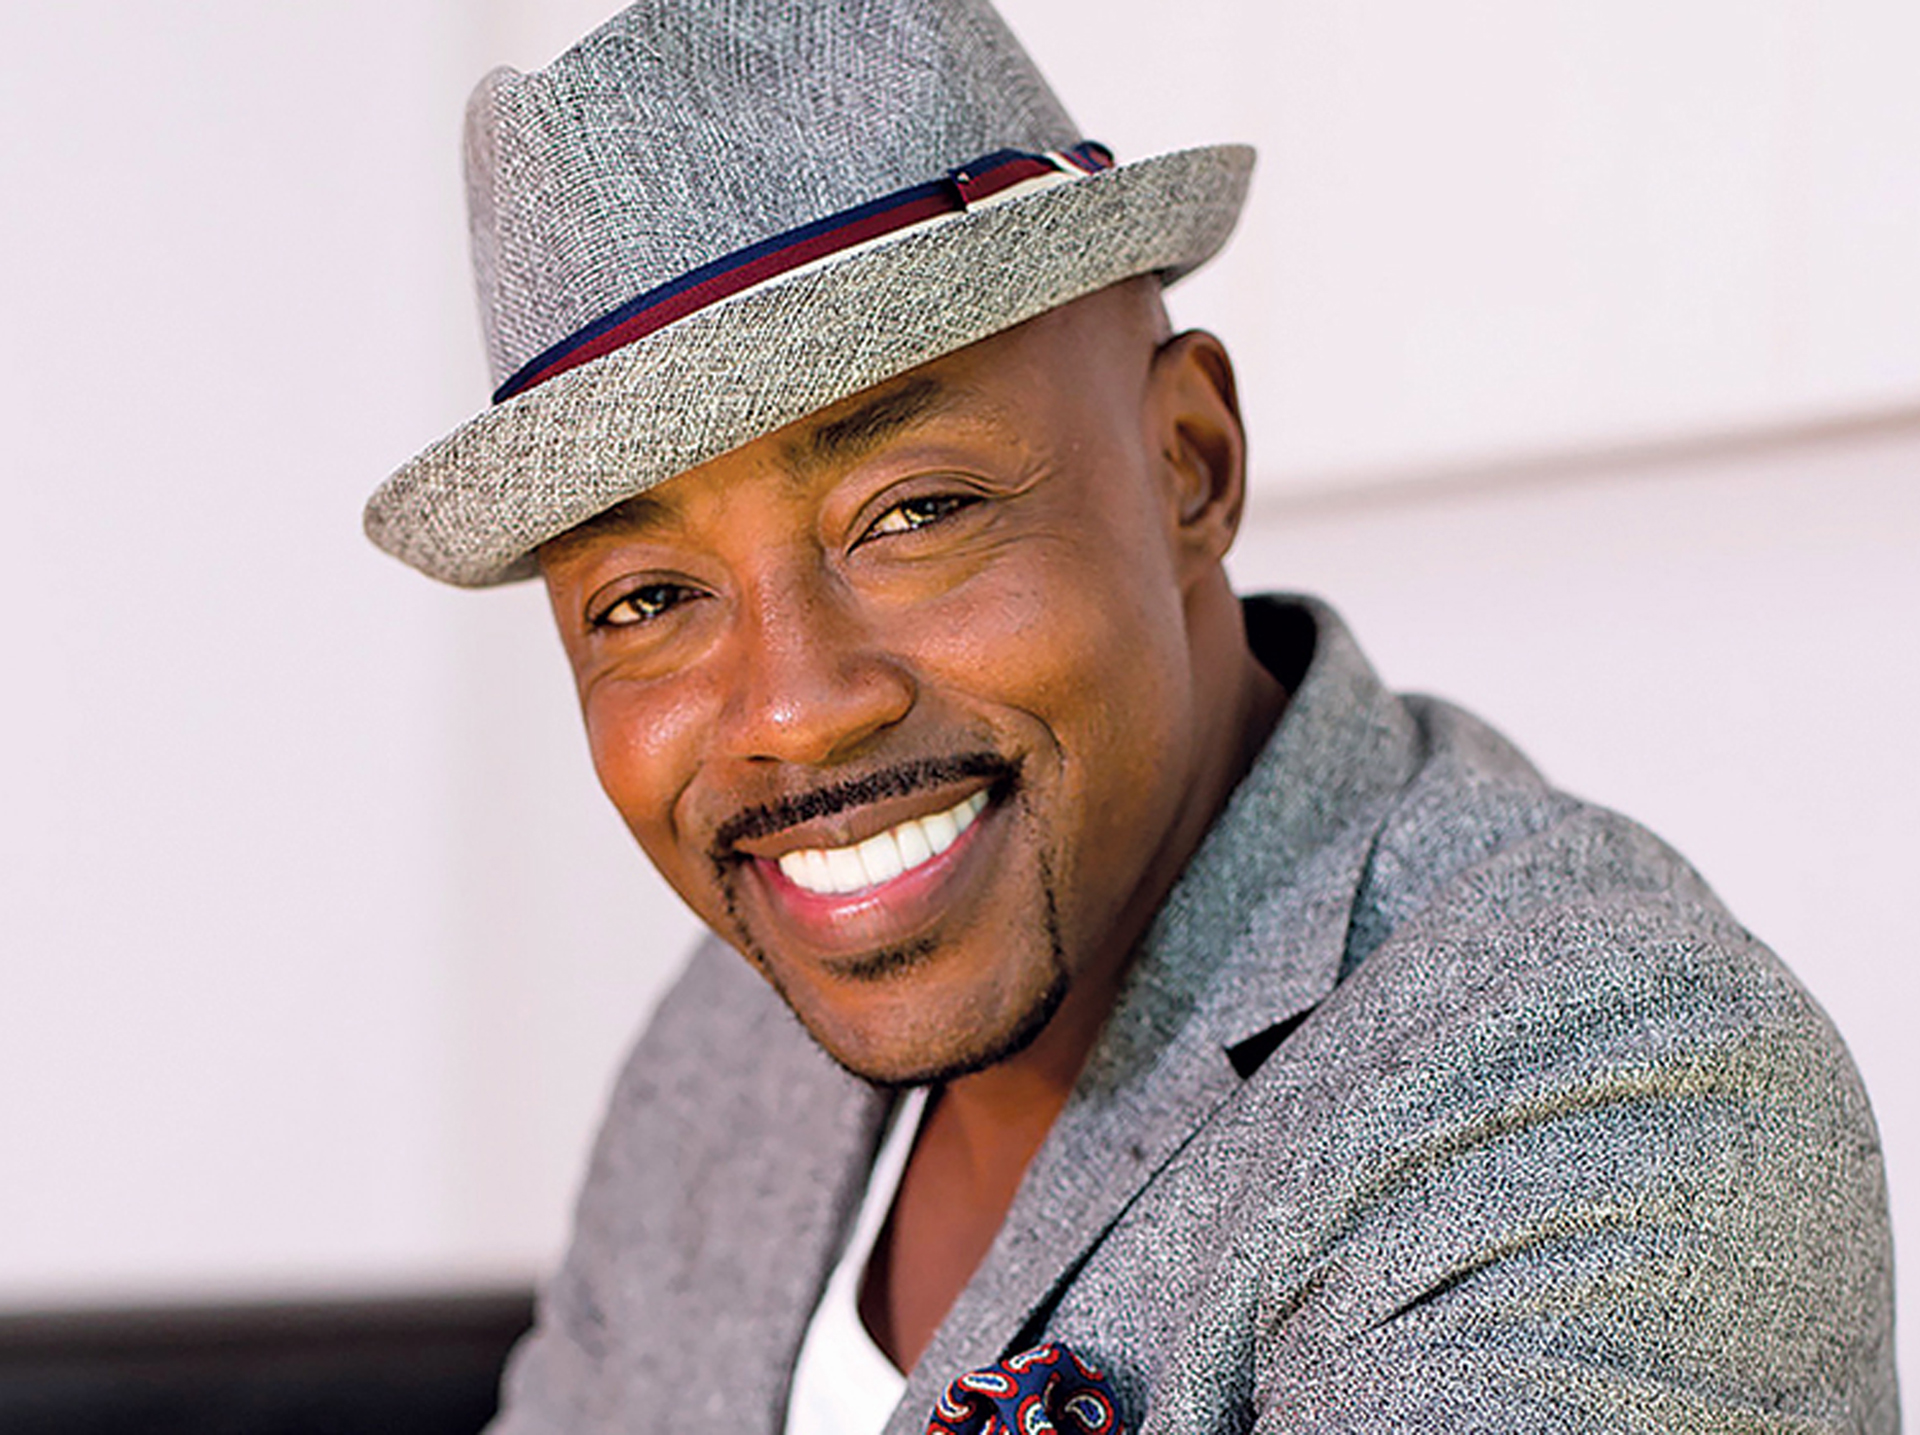 Filmmaker Will Packer is among the celebrities appearing at this year's Blueprint Men's Summit.